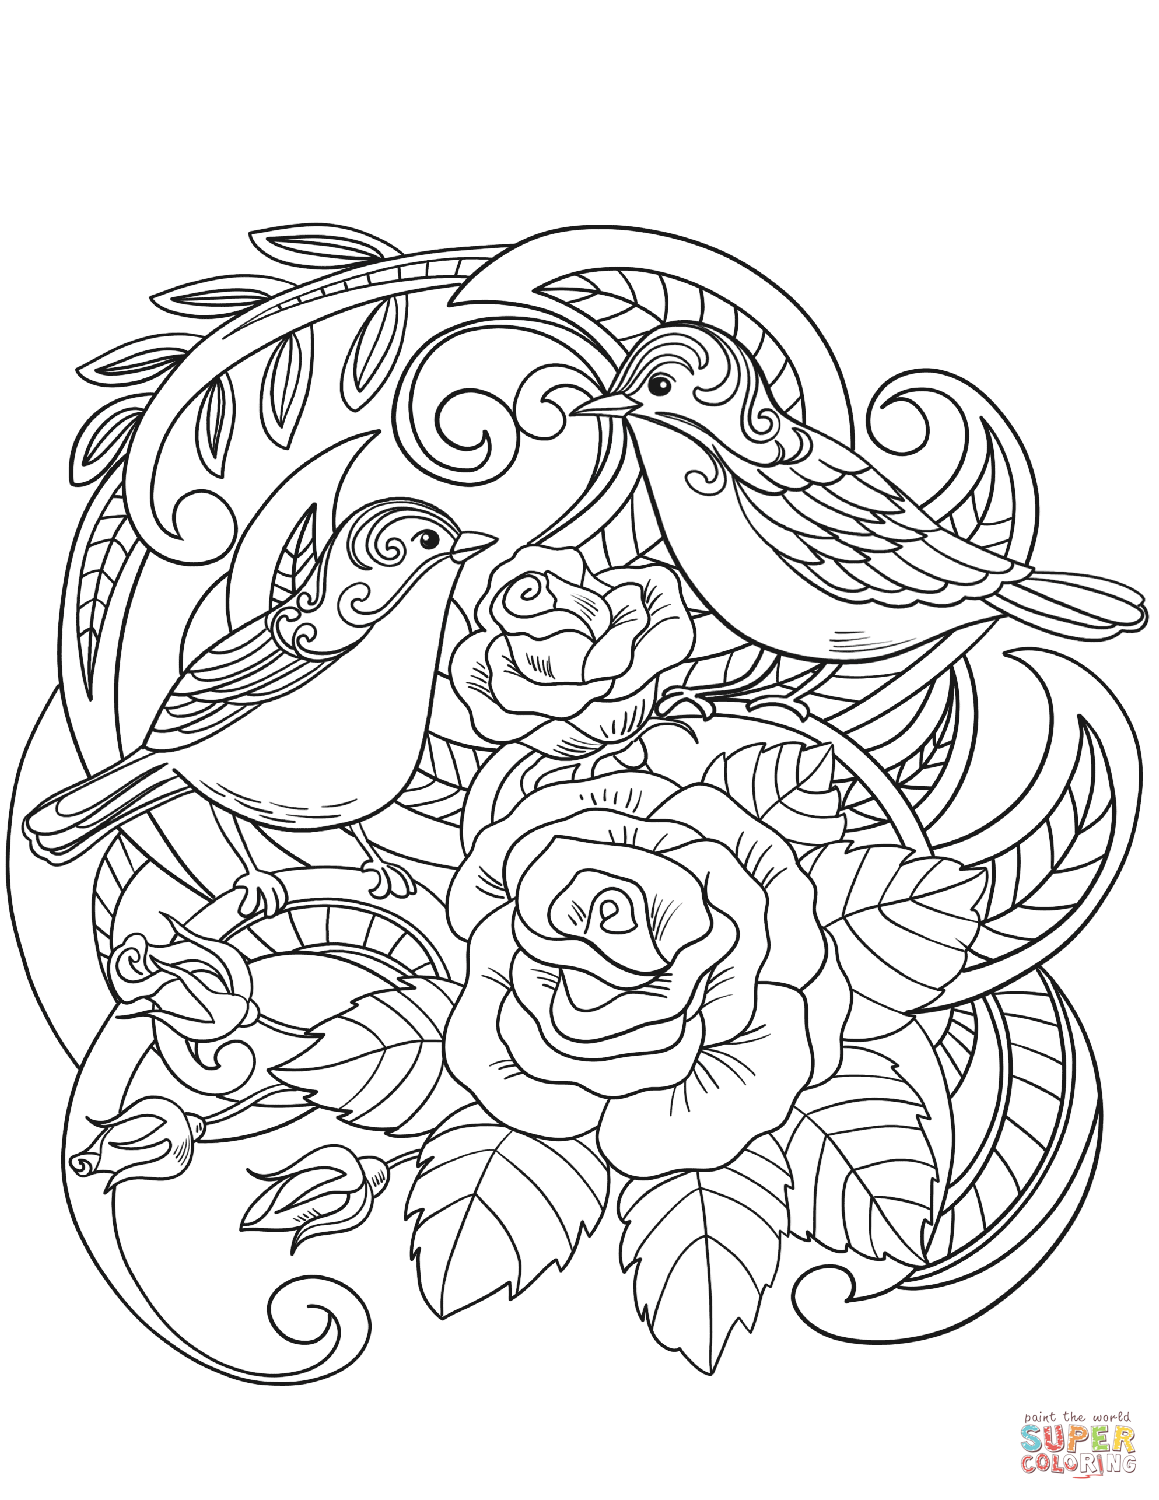 House Sparrow In Flowers Coloring Page Png 1 159 1 500 Pixels Coloring Pages Free Printable Coloring Pages Free Coloring Pages